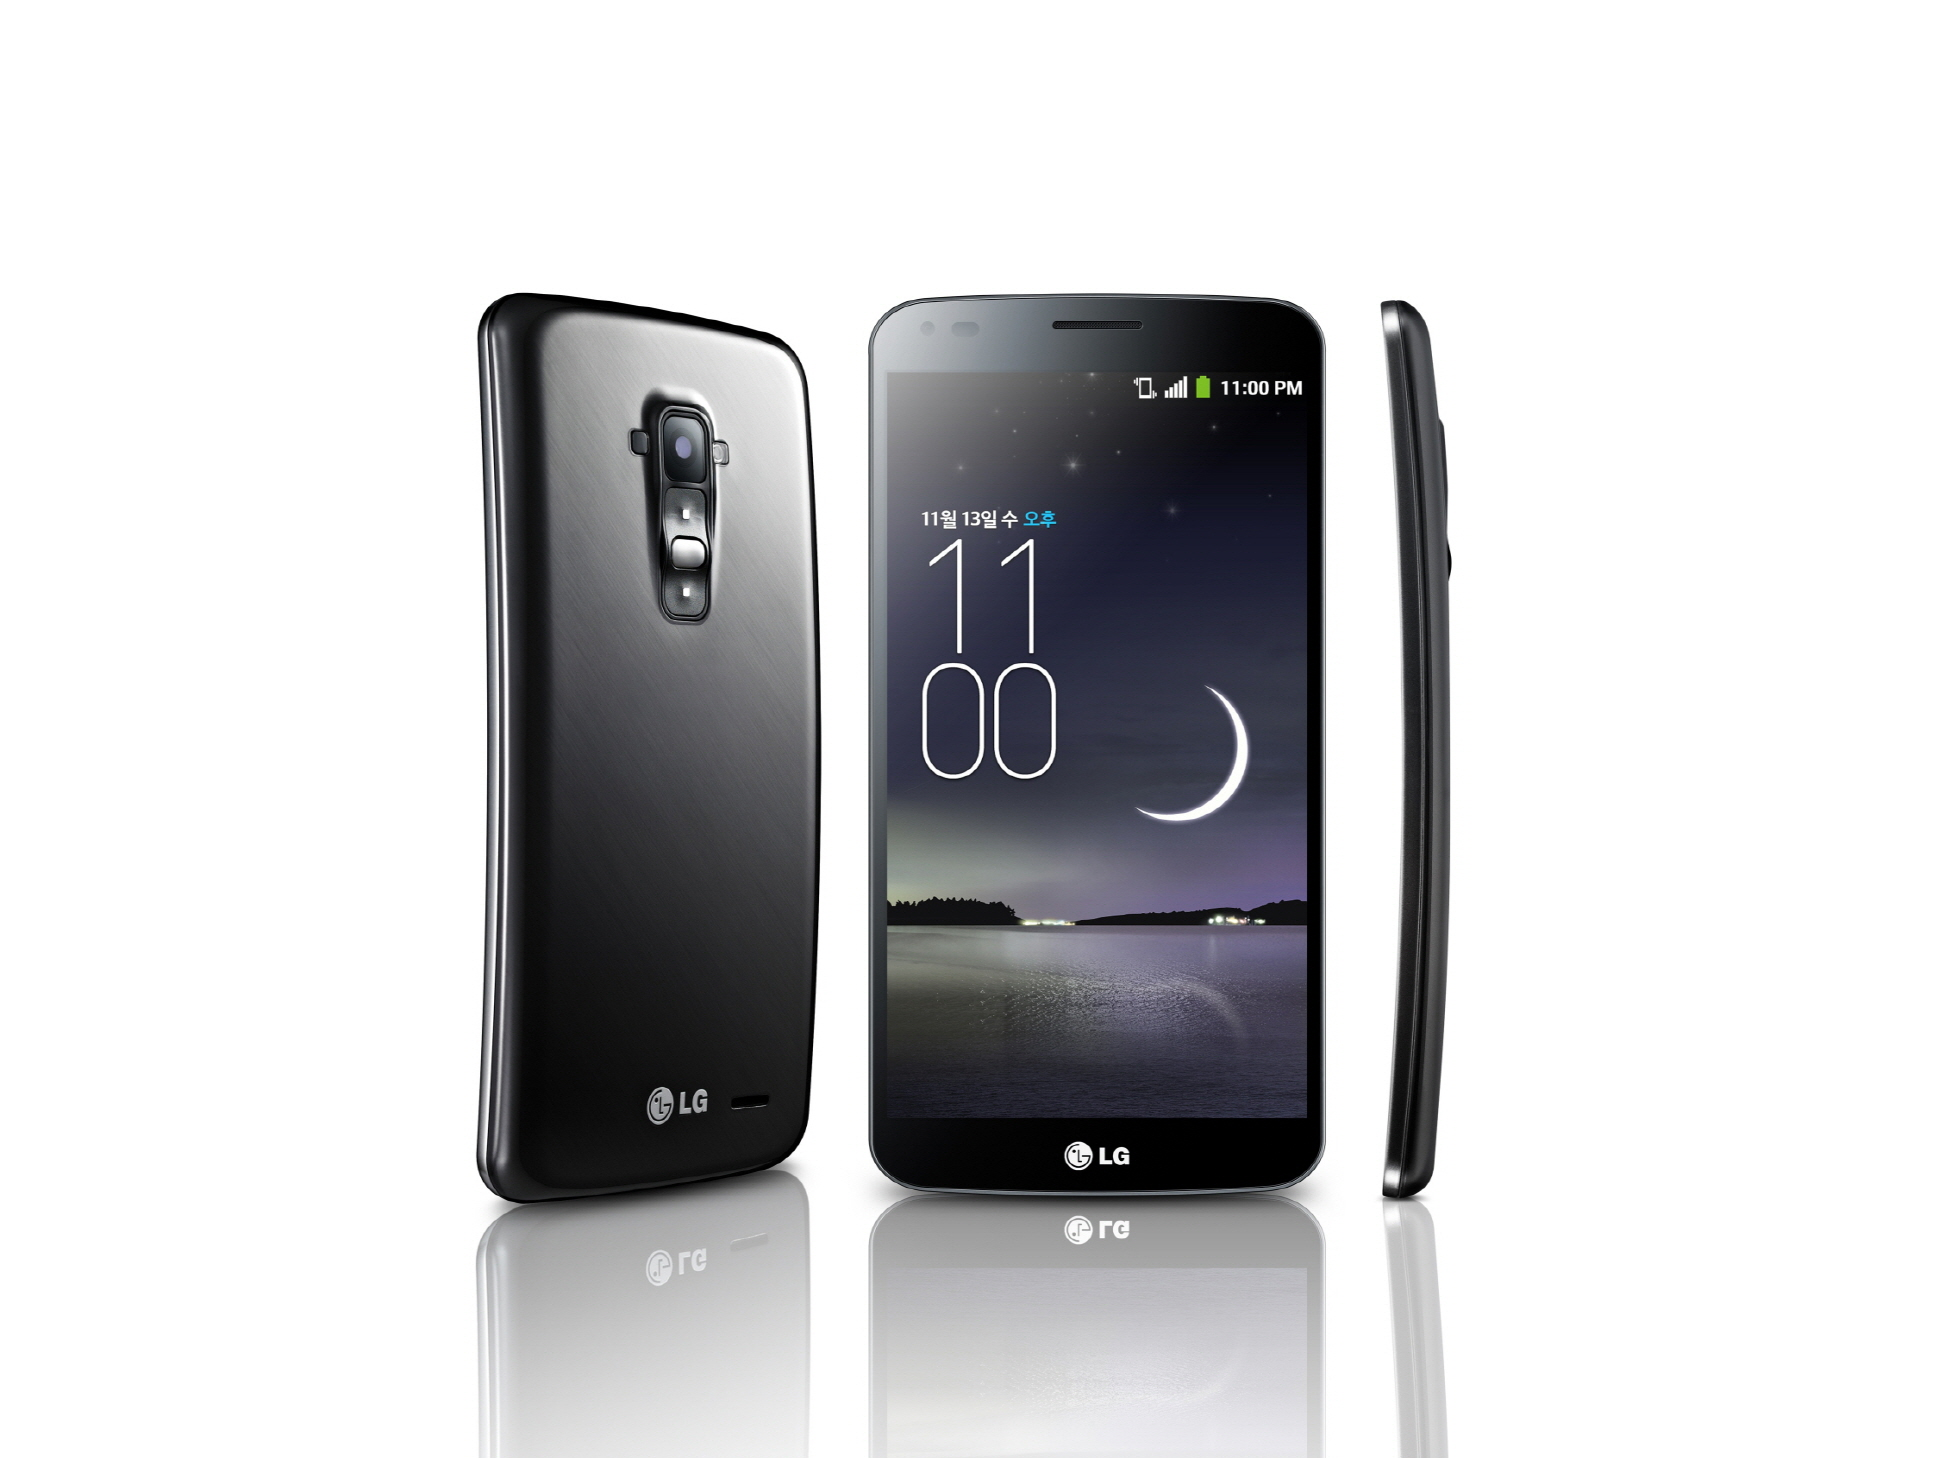 LG G Flex Android 5.0 Lollipop Update won't Happen!